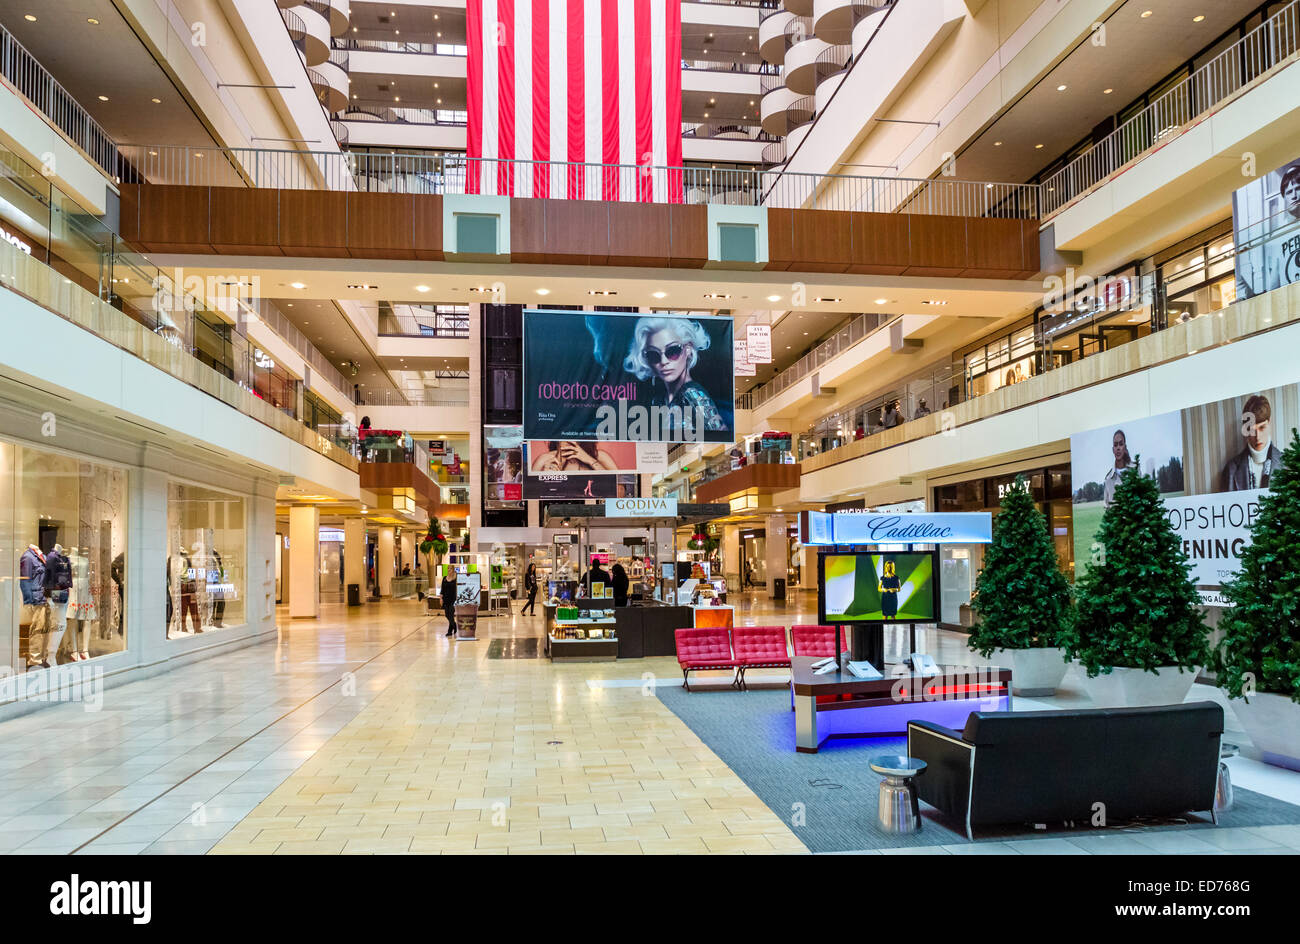 interior of the galleria shopping mall houston texas usa stock photo 76990608 alamy. Black Bedroom Furniture Sets. Home Design Ideas